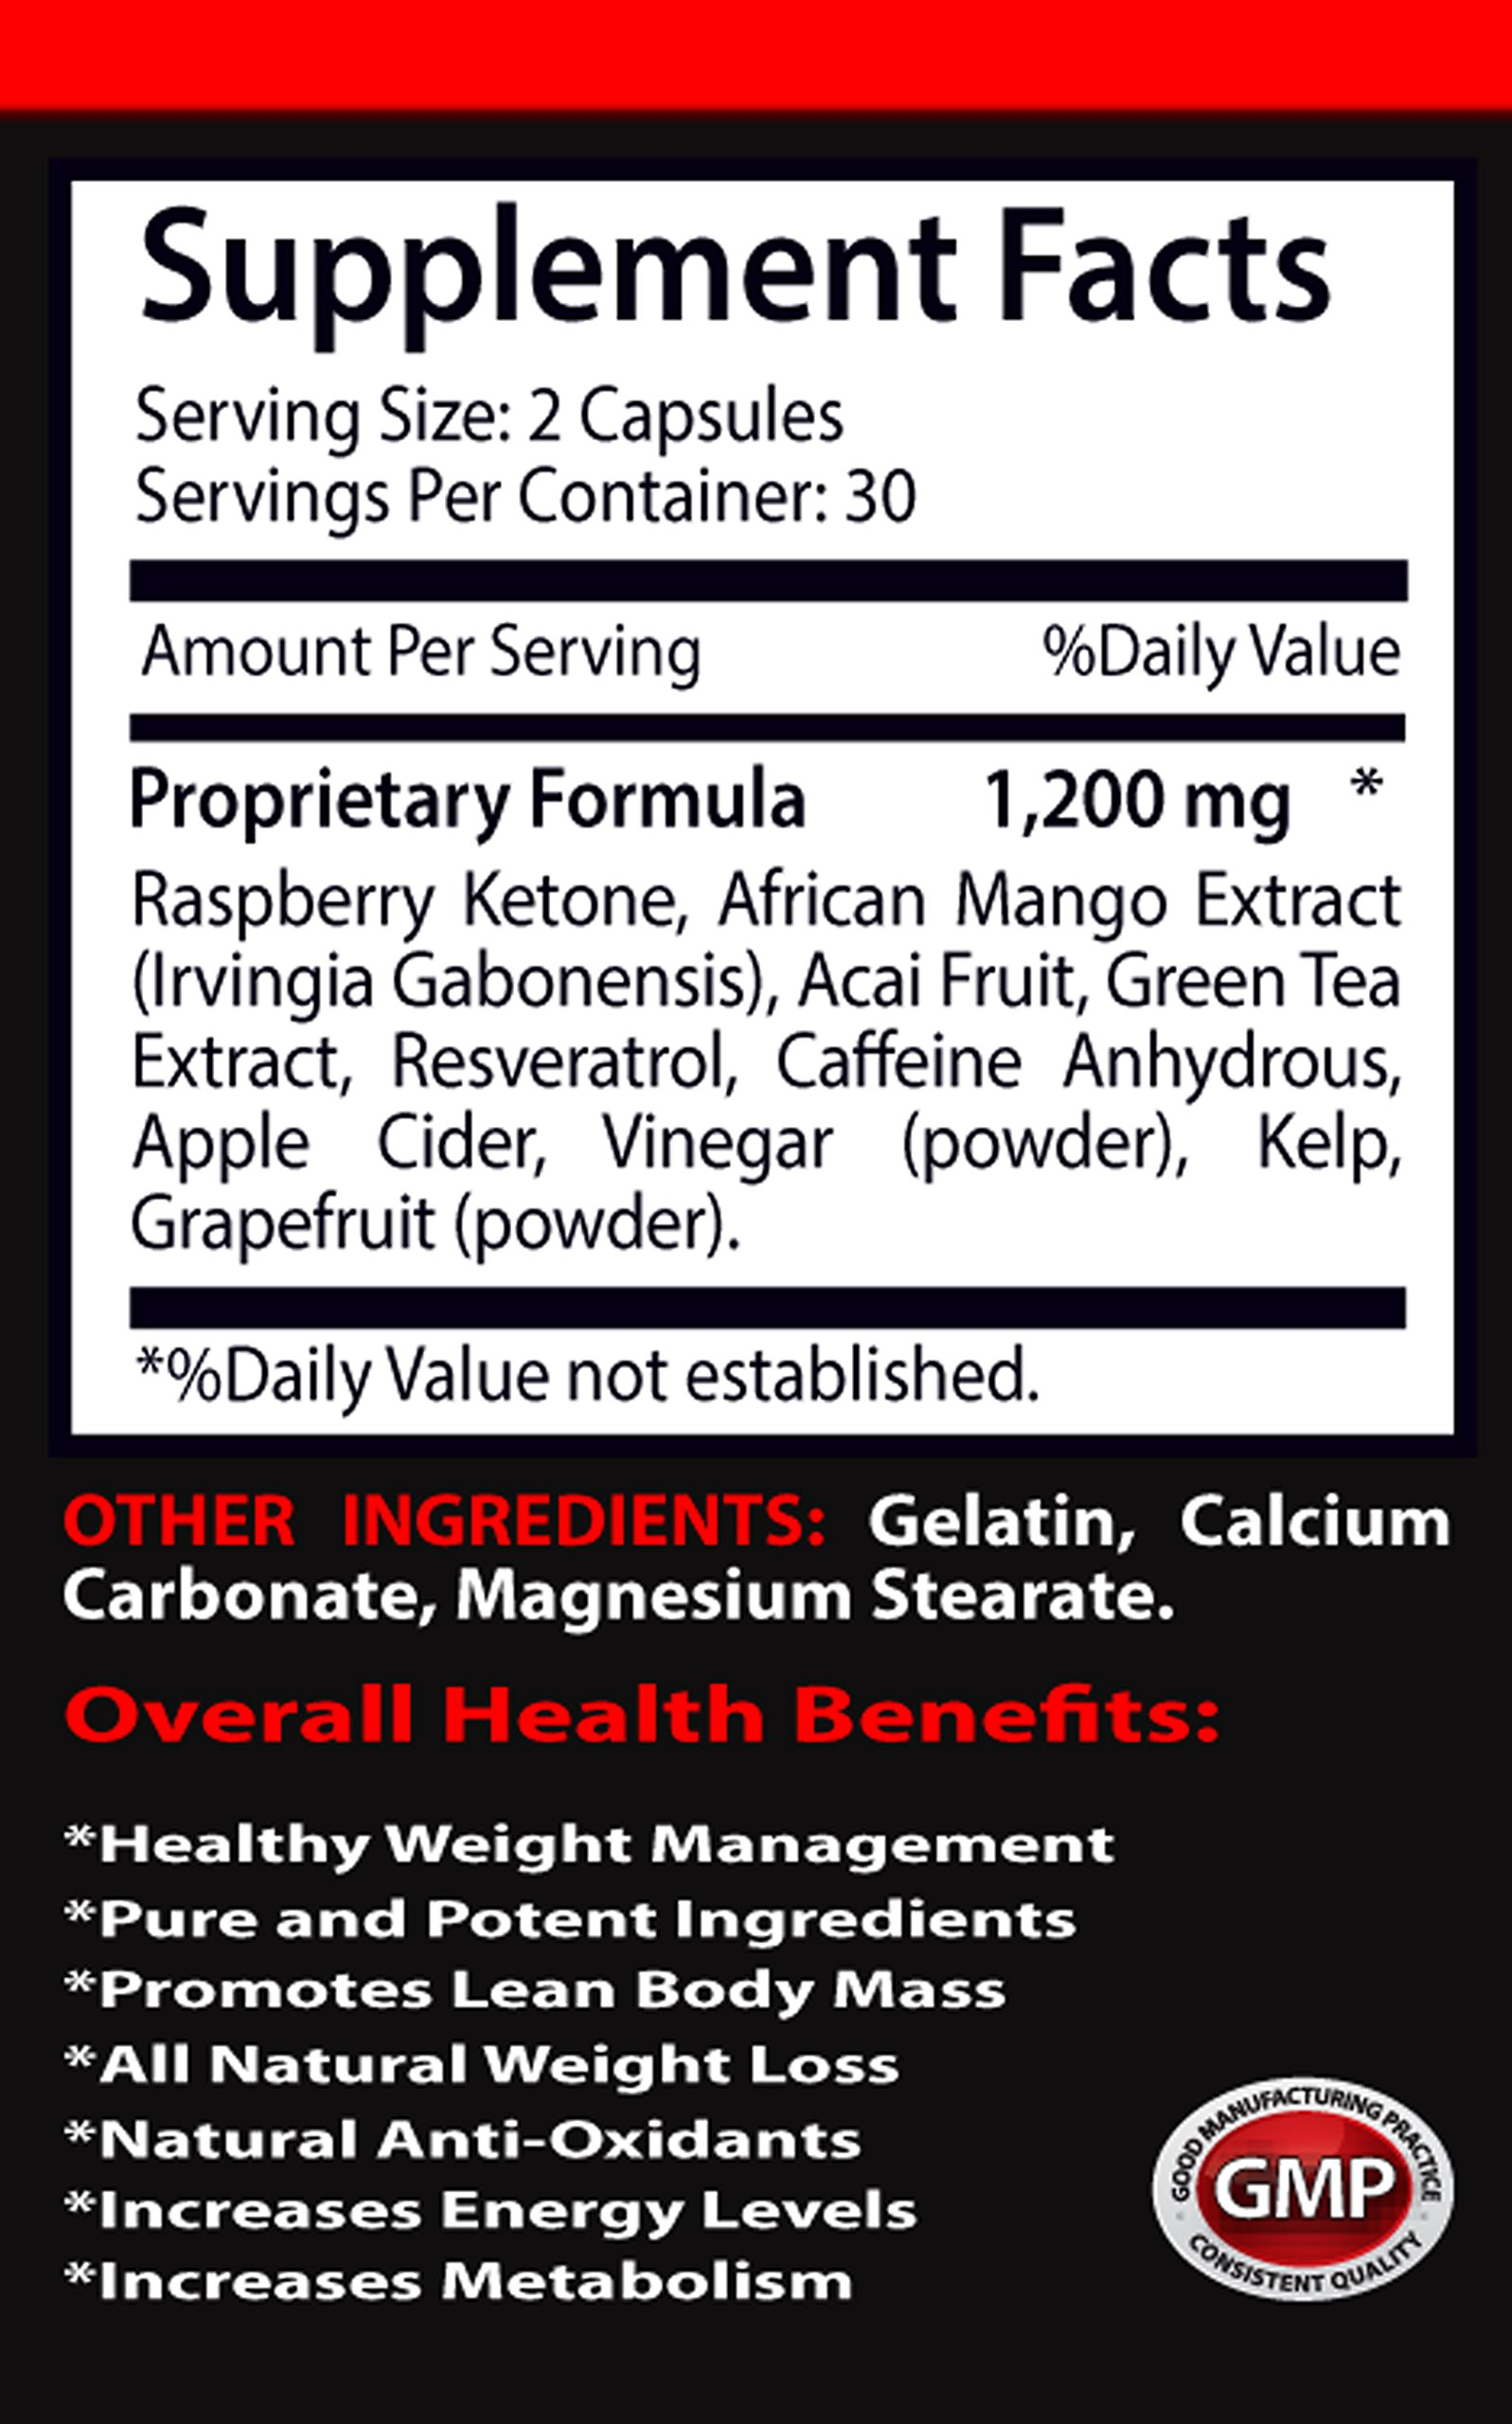 Blood sugar support supplements - RASPBERRY KETONES LEAN 1200 EXTRACT - Blood sugar support supplements - 6 Bottles 360 Capsules by VIP VITAMINS (Image #2)